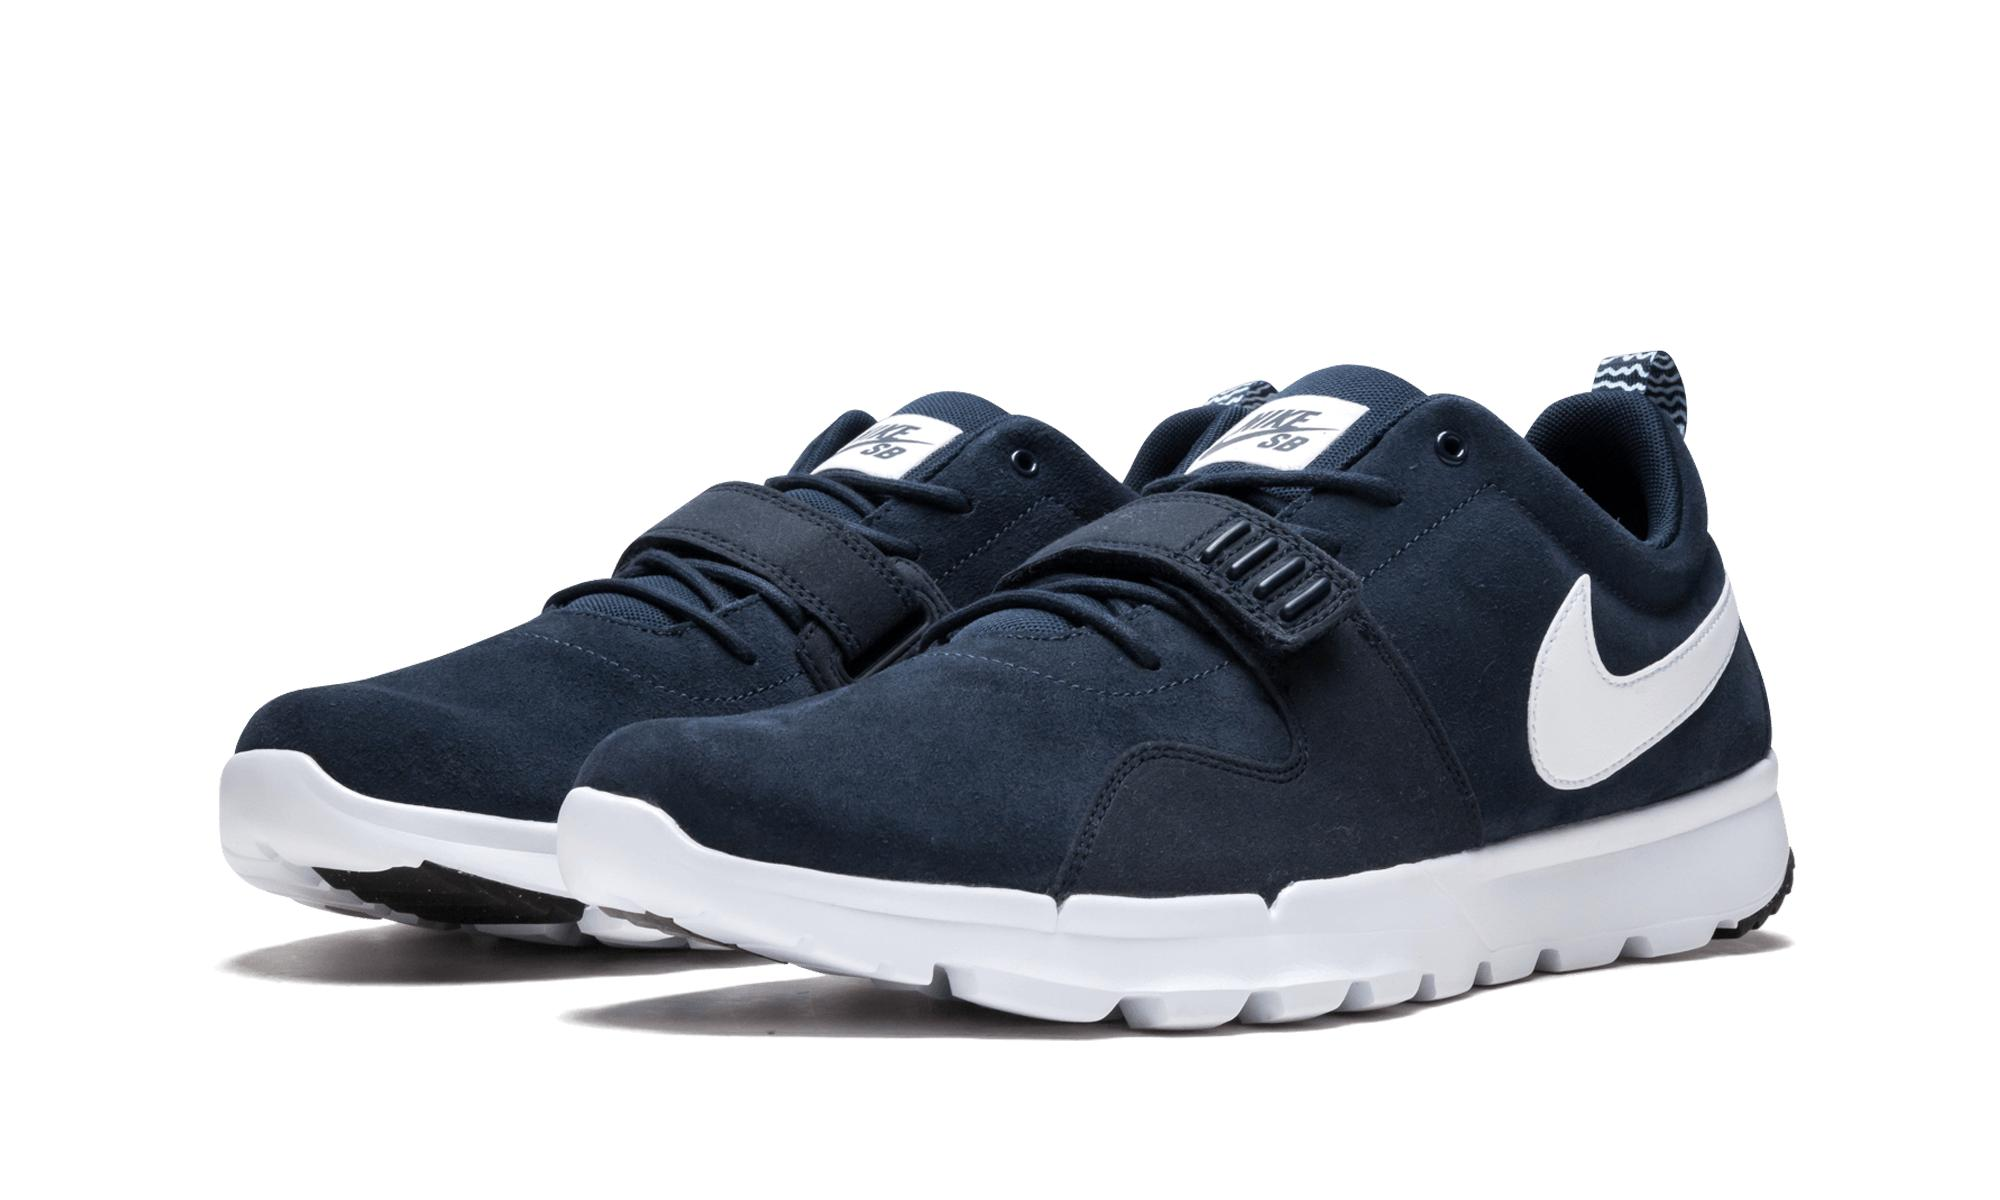 separation shoes d69c2 aa7da Nike - Blue Trainerendor L for Men - Lyst. View fullscreen